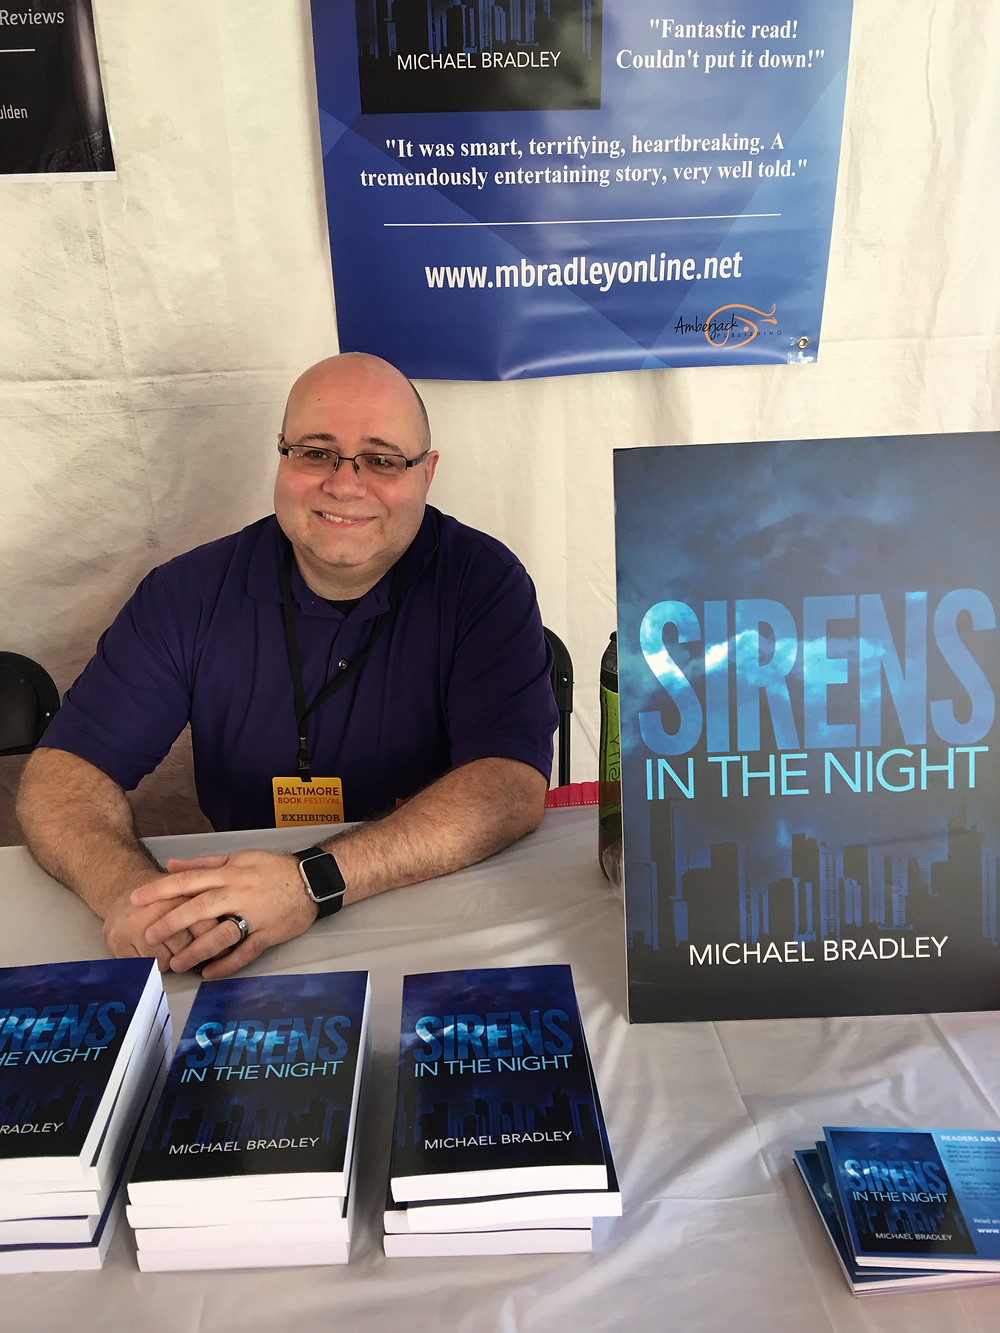 Appearing at the Baltimore Book Festival